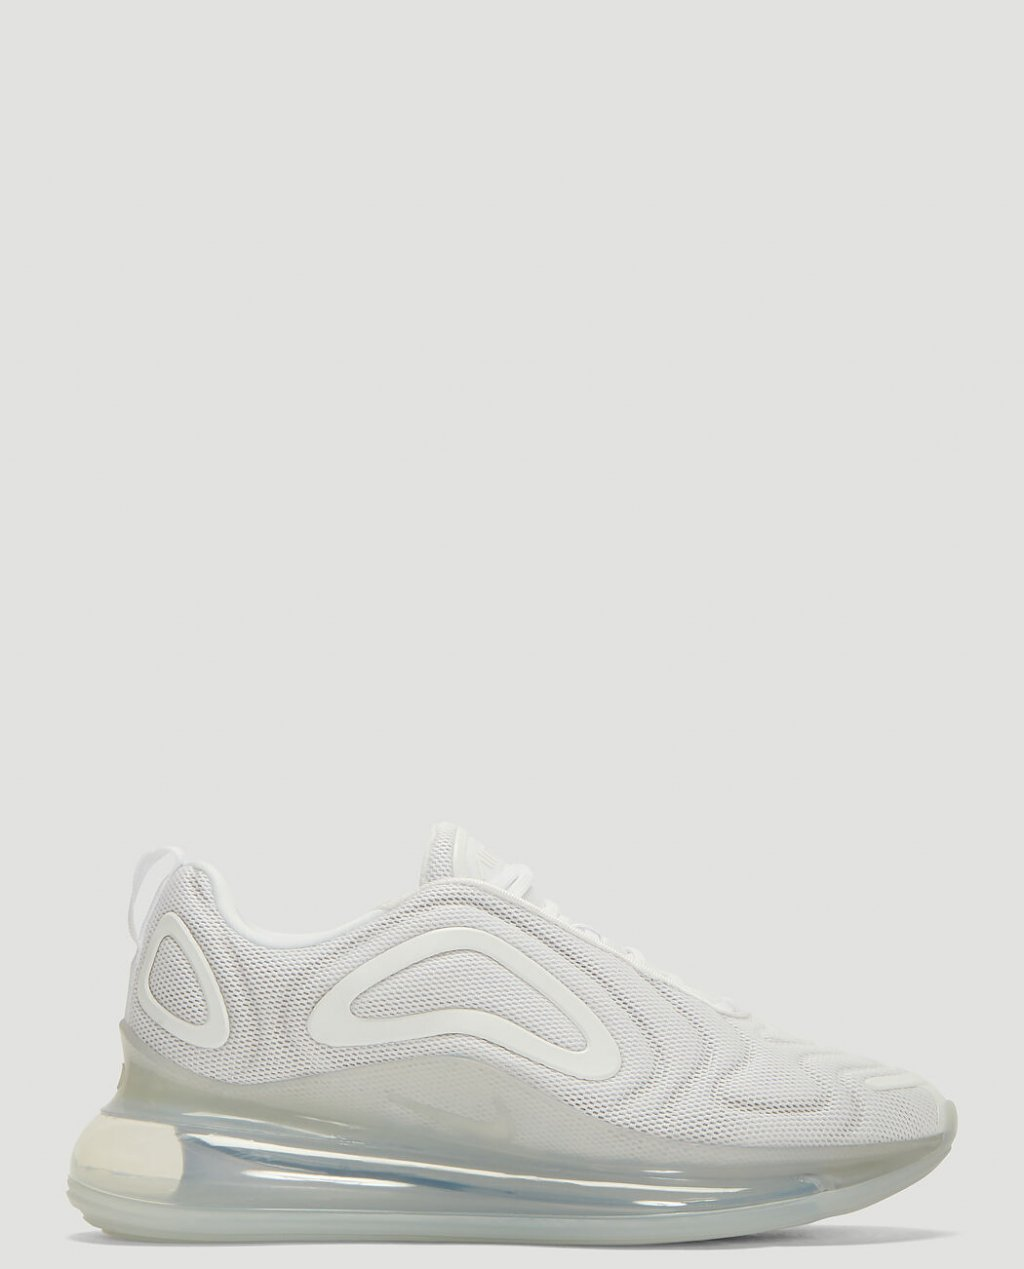 NIKE Air Max 720 Sneakers in White